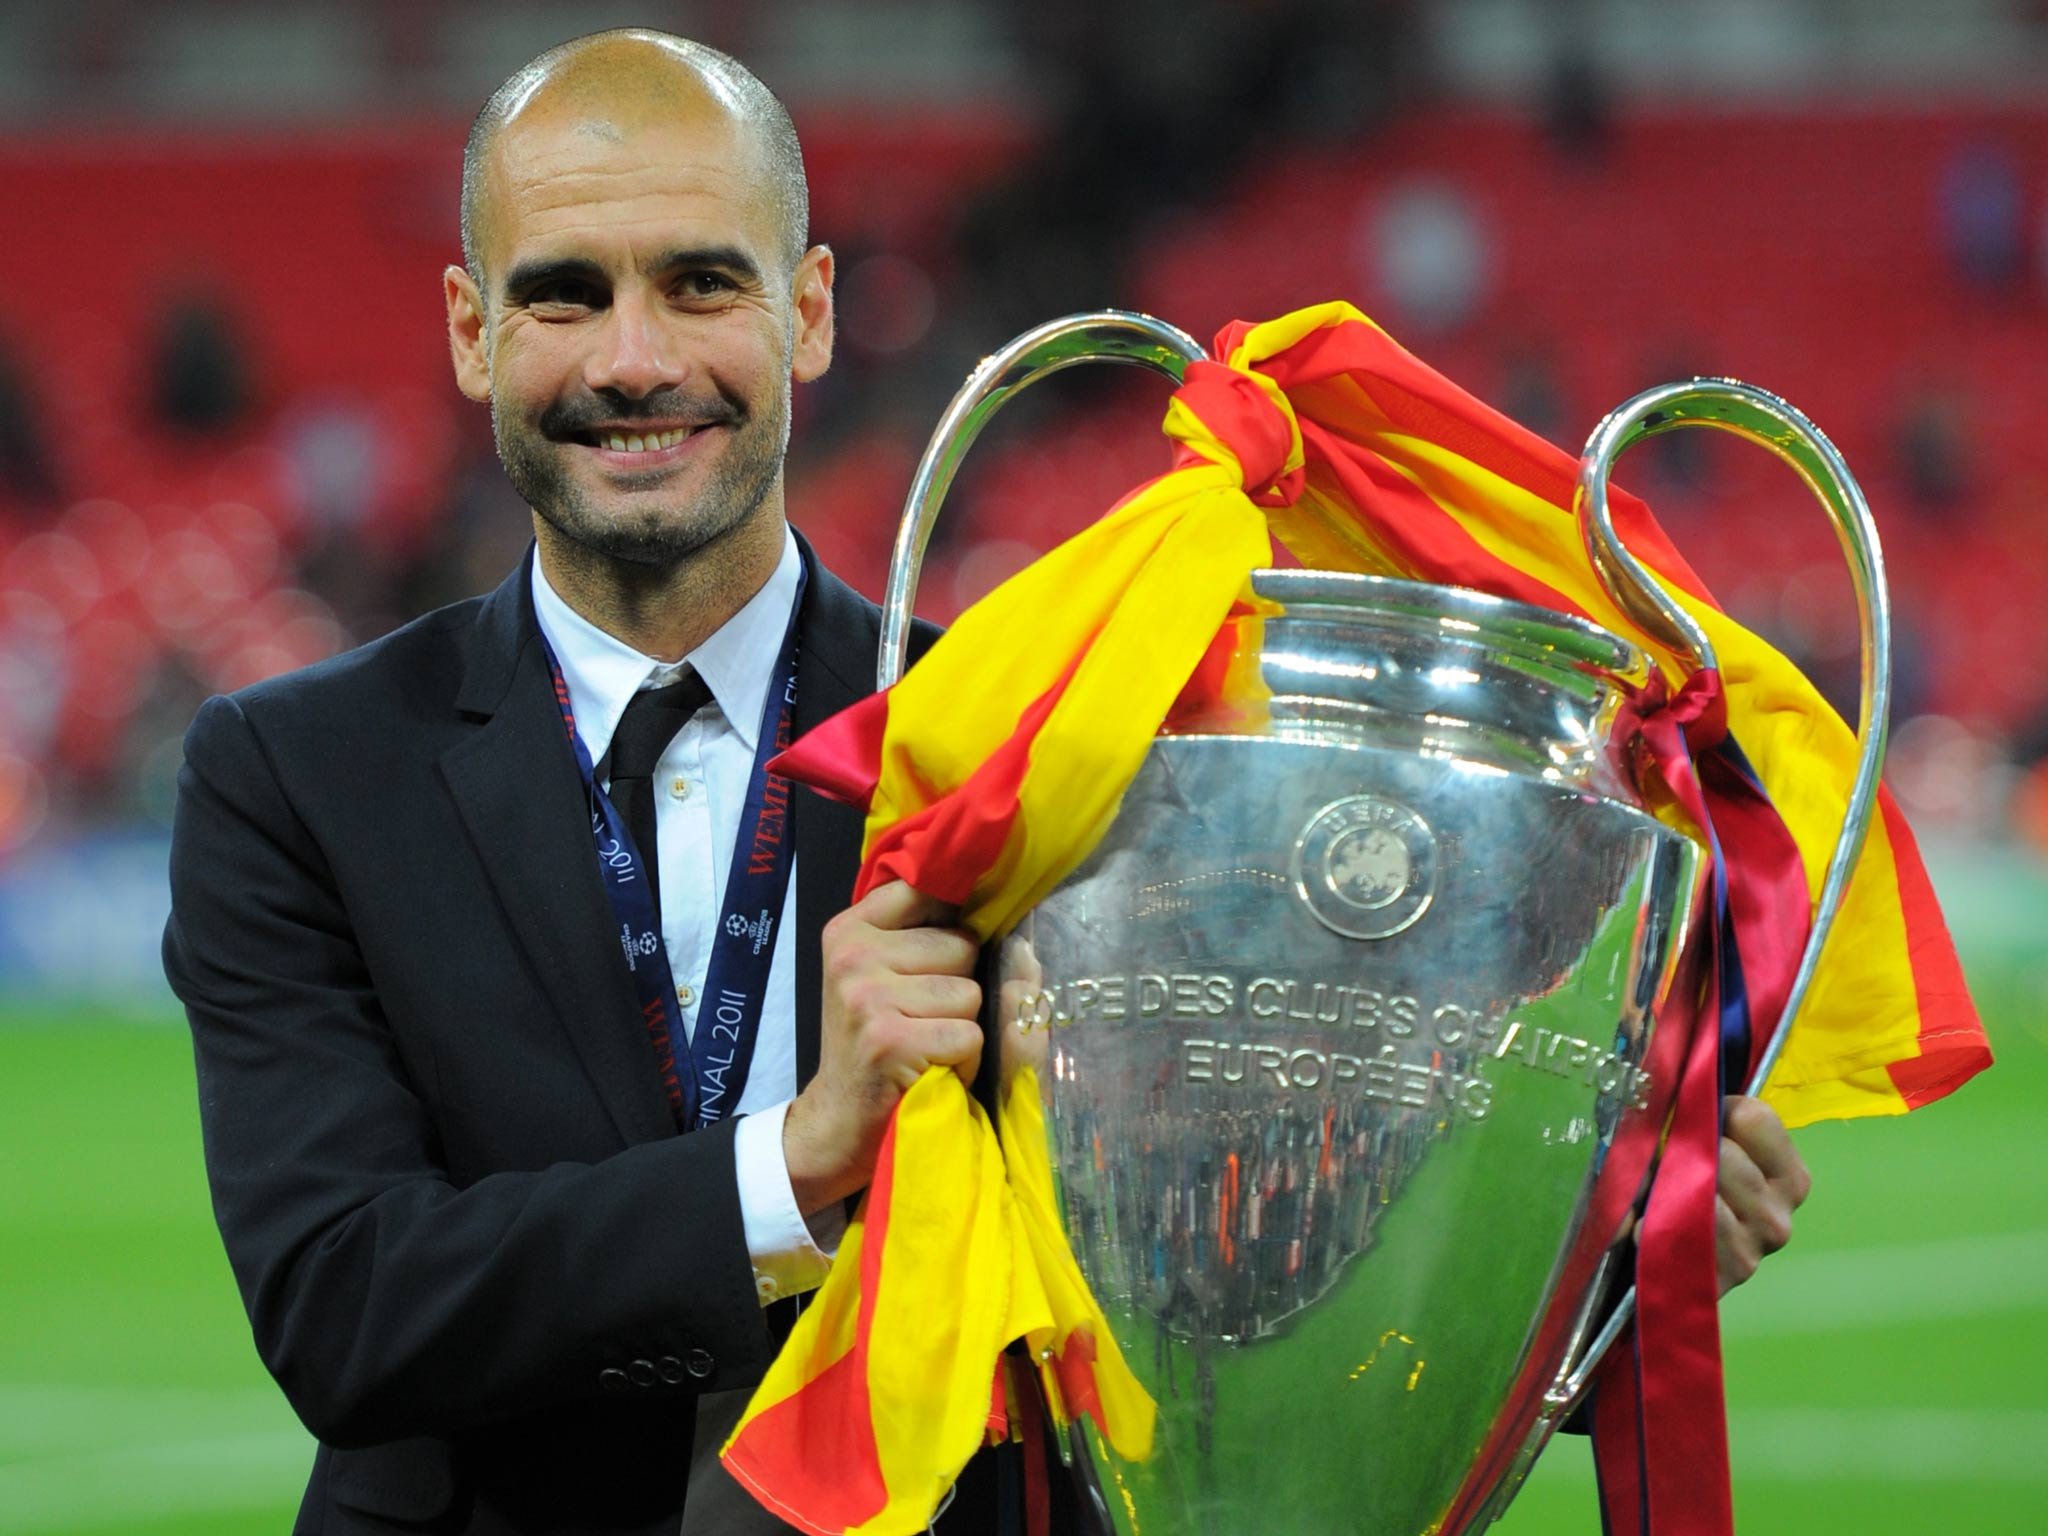 Pep talk - if Guardiola takes over as City manager next summer will Big Ears be far behind him?